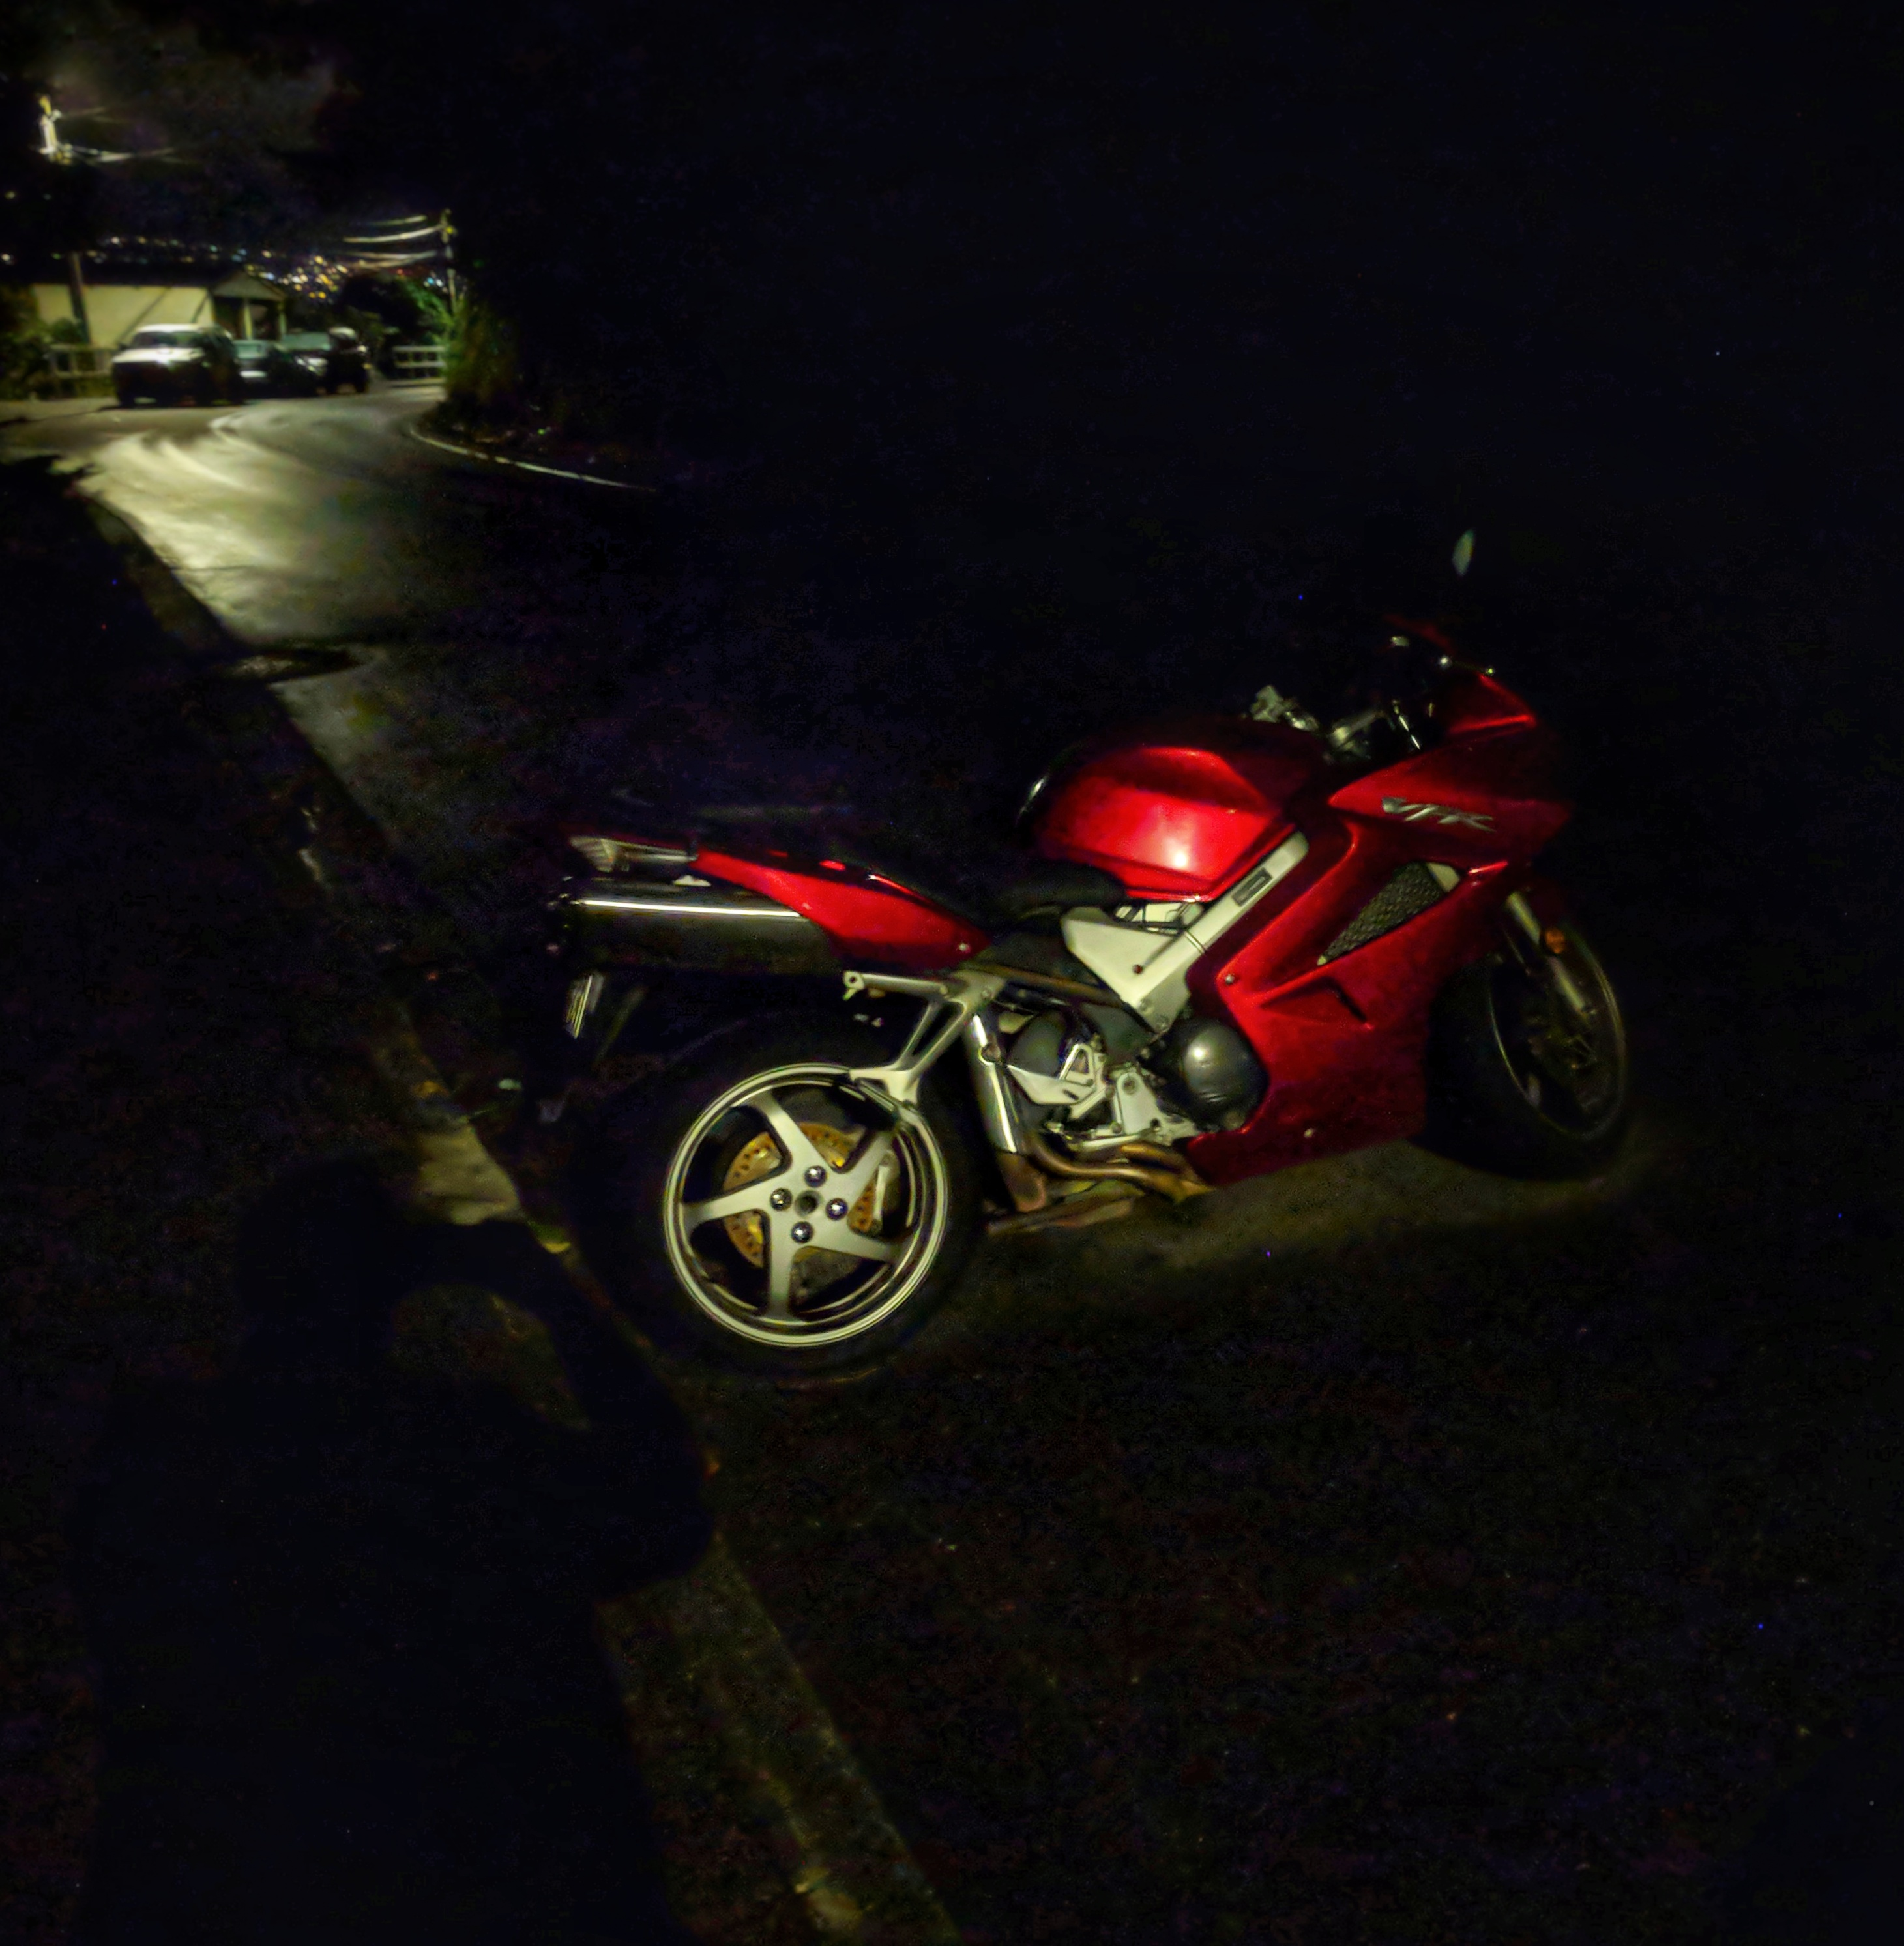 Red motorbike in the shadows of the night